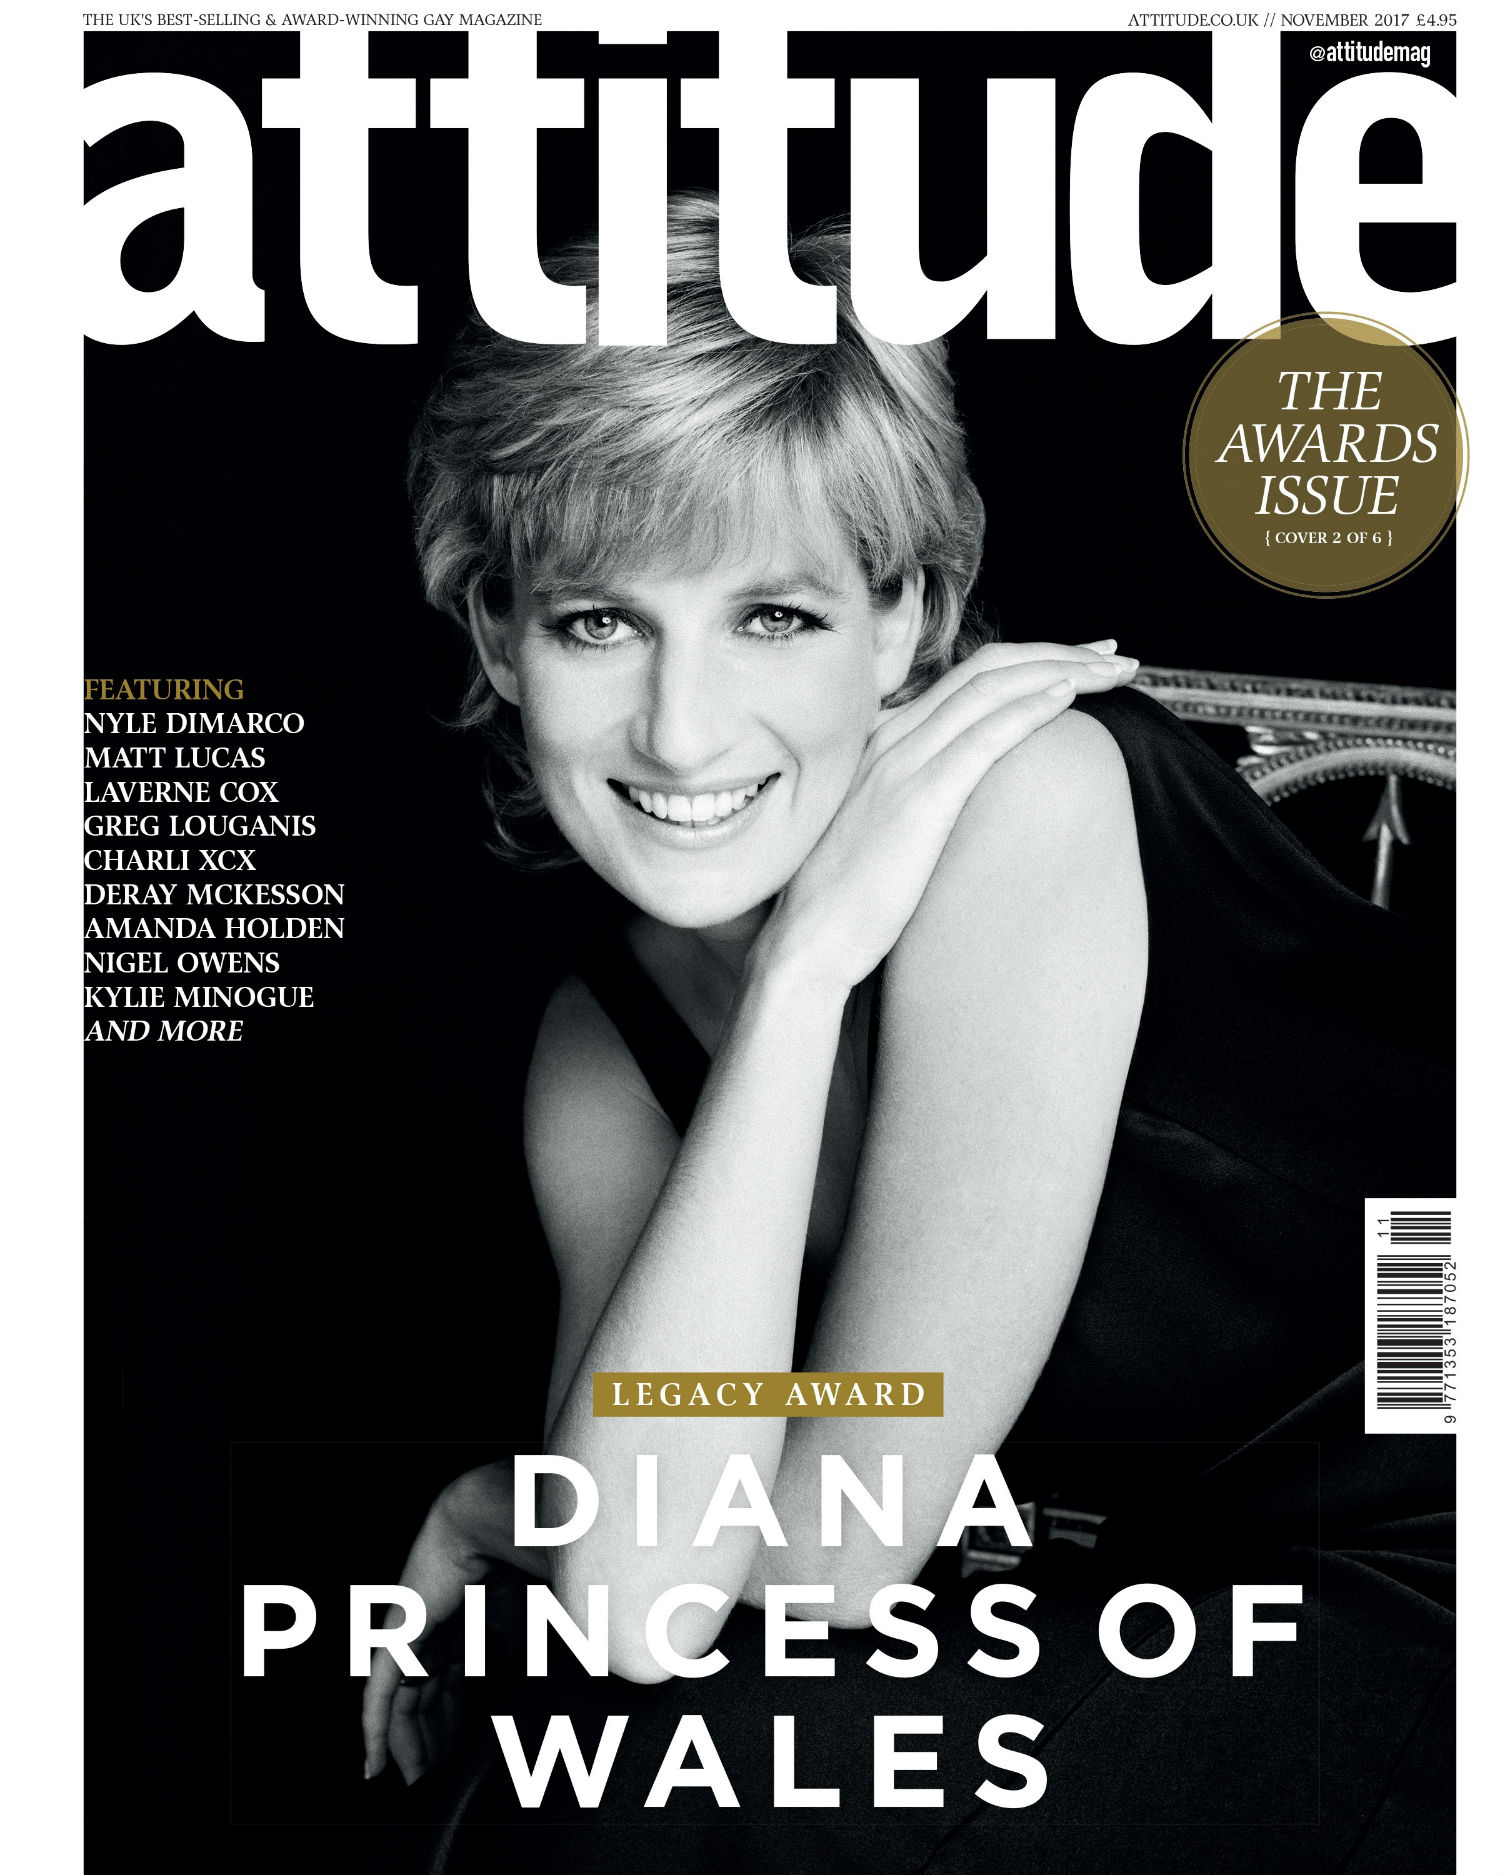 Prince Diana graces the cover of Attitude magazine.